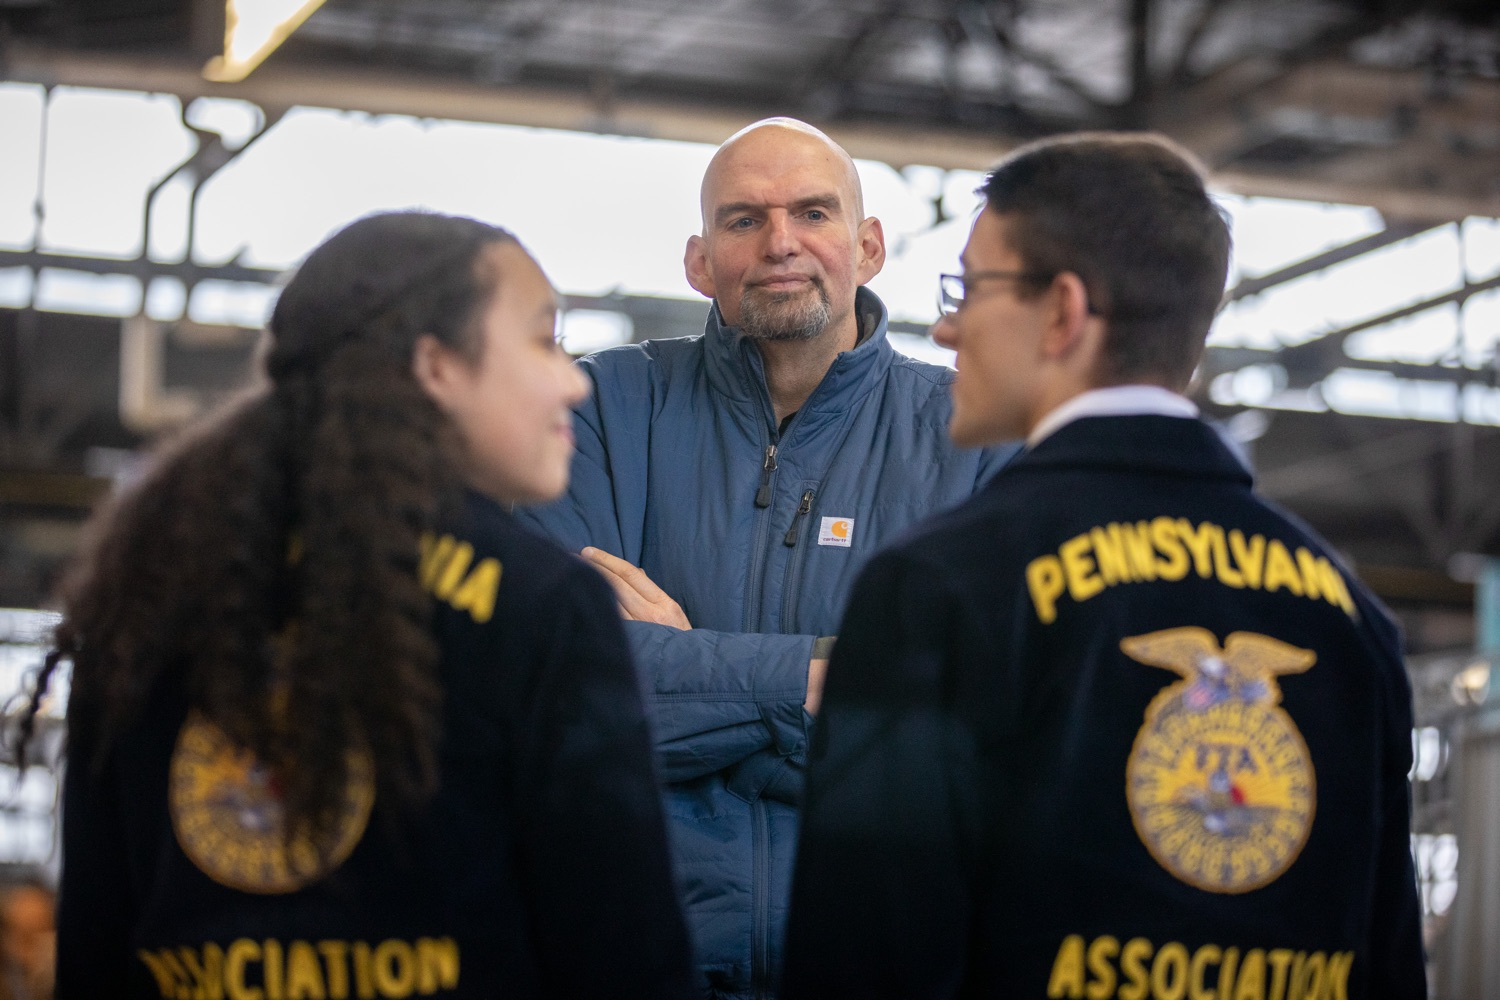 "<a href=""http://filesource.abacast.com/commonwealthofpa/photo/17646_agric_butter_sculpture_dz_013.jpg"" target=""_blank"">⇣ Download Photo<br></a>Lt. Governor John Fetterman speaking to Pennsylvania FFA members.  Lt. Governor John Fetterman and Secretary of Agriculture Russell Redding today unveiled the 2020 Pennsylvania Farm Show butter sculpture, carved from a half-ton of butter depicting three of Pennsylvanias beloved professional sports mascots: Philadelphia Flyers Gritty, Philadelphia Eagles Swoop, and Pittsburgh Steelers Steely McBeam celebrating with a spread of Pennsylvania dairy products. The sculpture, a long-time Farm Show staple, encourages Pennsylvanians to be a fan of Pennsylvania dairy and give a cheer to the more than 6,200 dairy farmers in the commonwealth.  Harrisburg, PA  January 2, 2020"